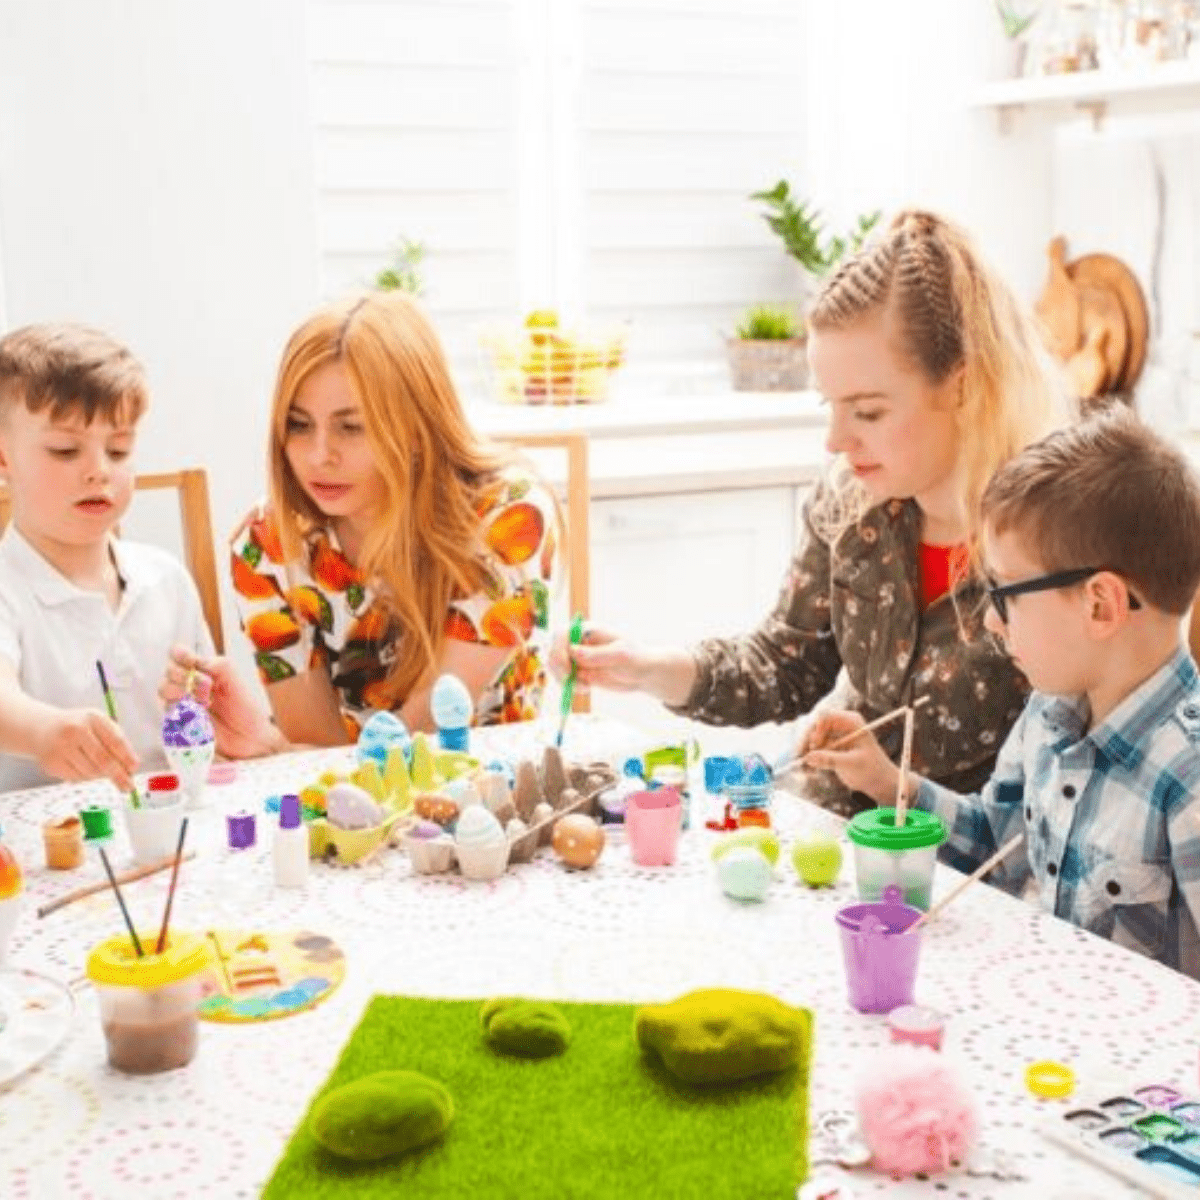 two moms and two boys decorating Easter eggs at a table with paint